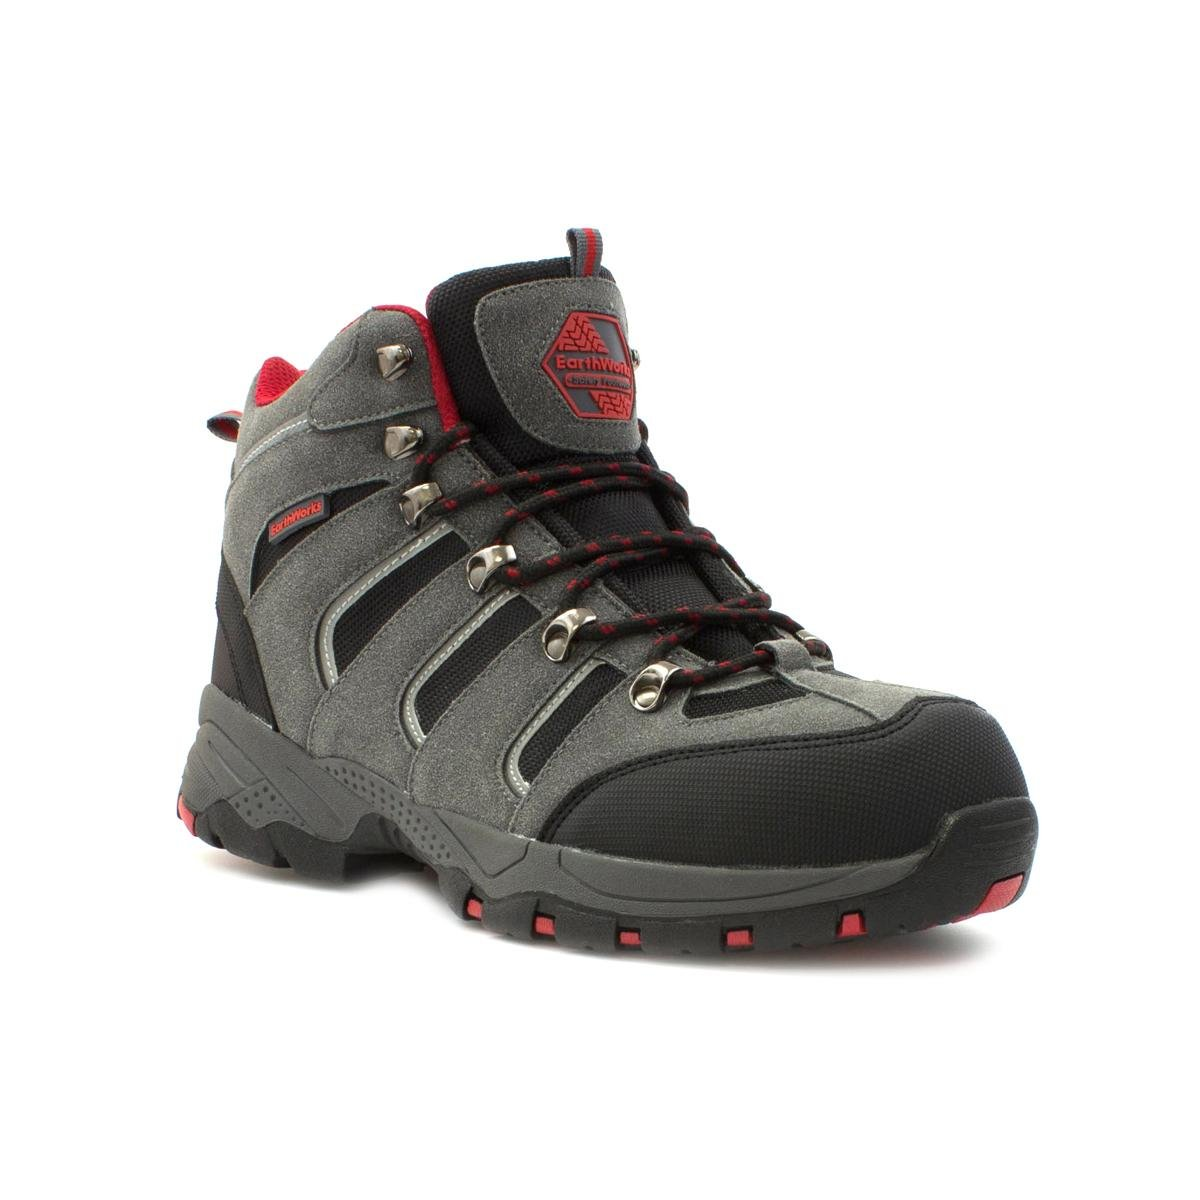 84718510272 Earth Works Safety - Earthworks Mens Grey Lace Up Safety Boot - Size ...